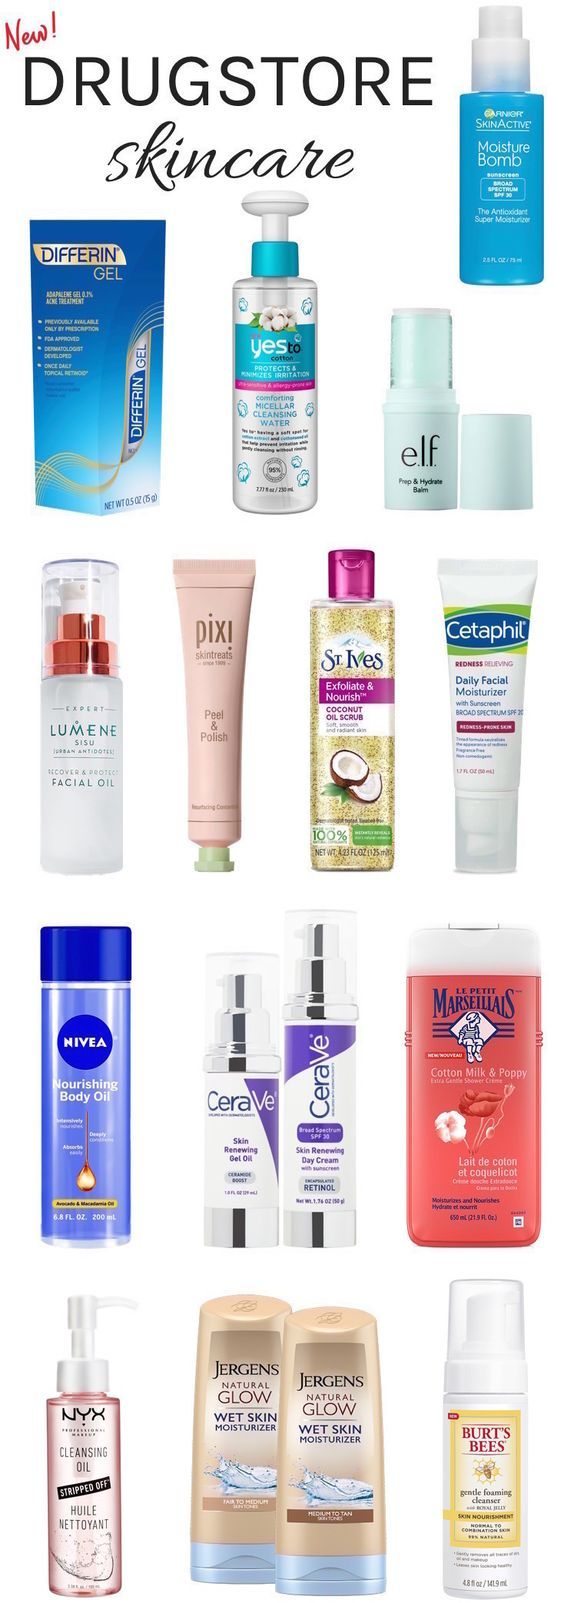 20 New Drugstore Skincare Saviors You Need to Check Out ...